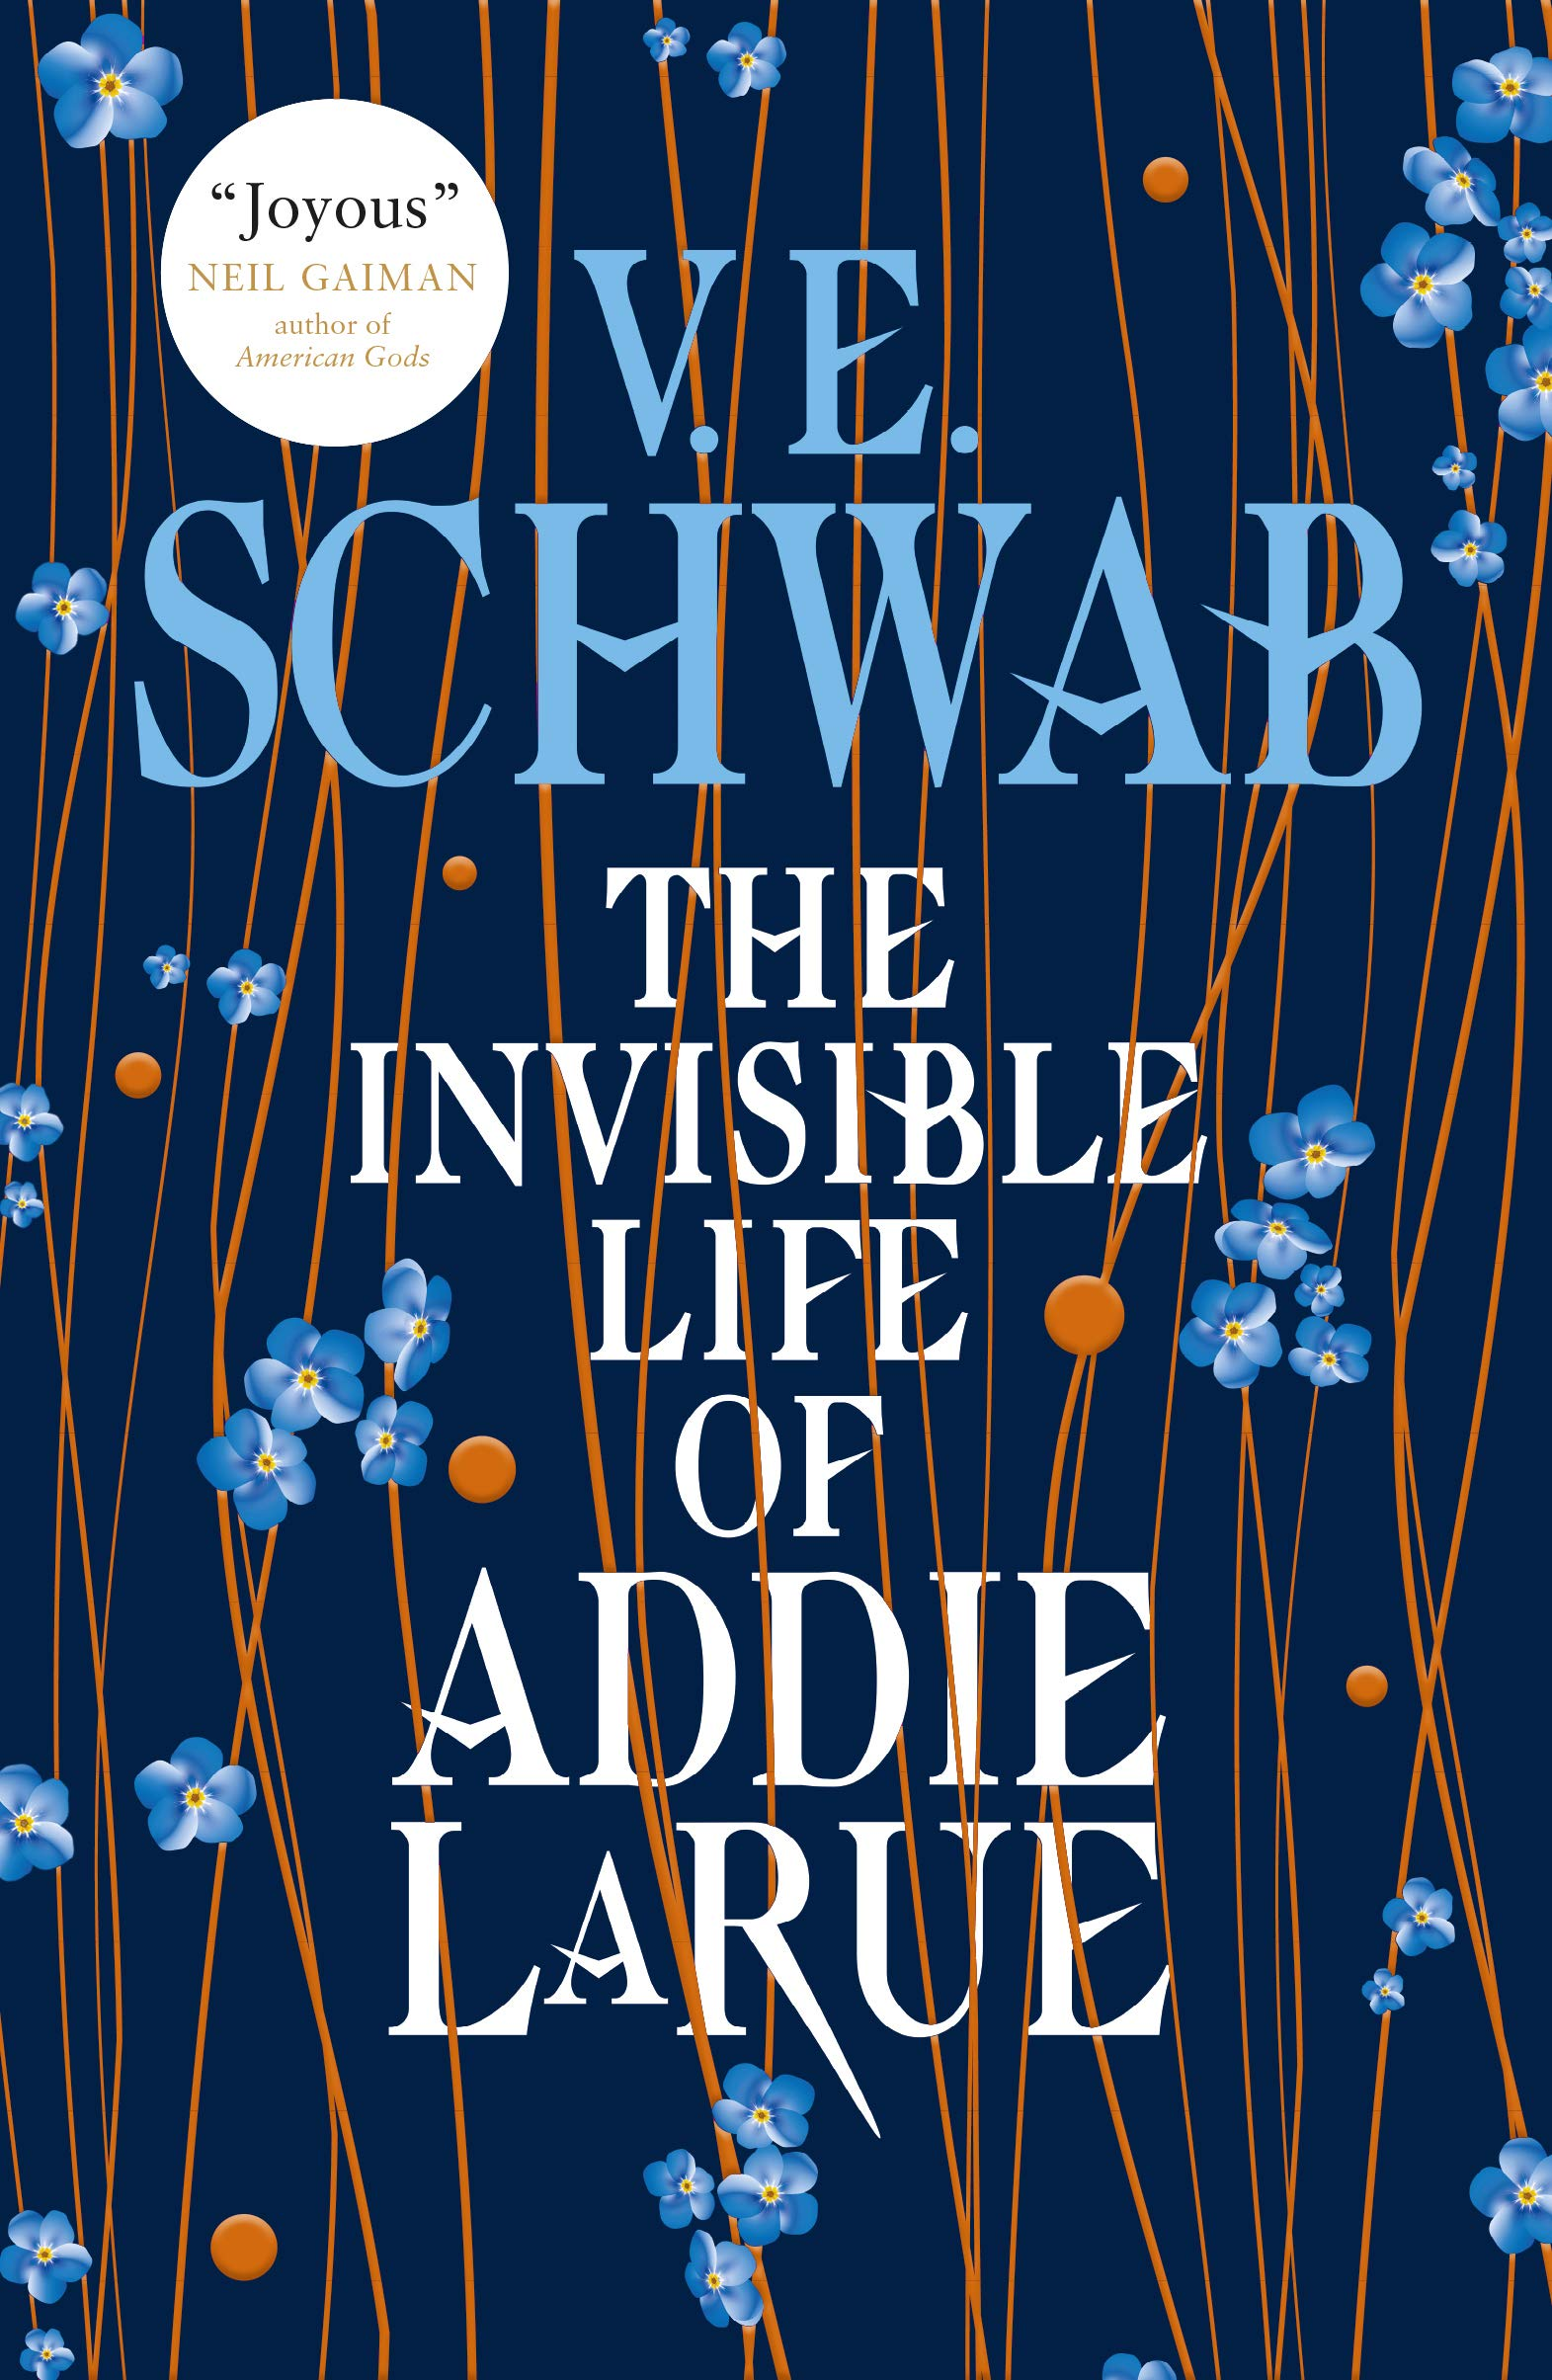 The Invisible Life of Addie Larue | VE Schwab | Charlie Byrne's